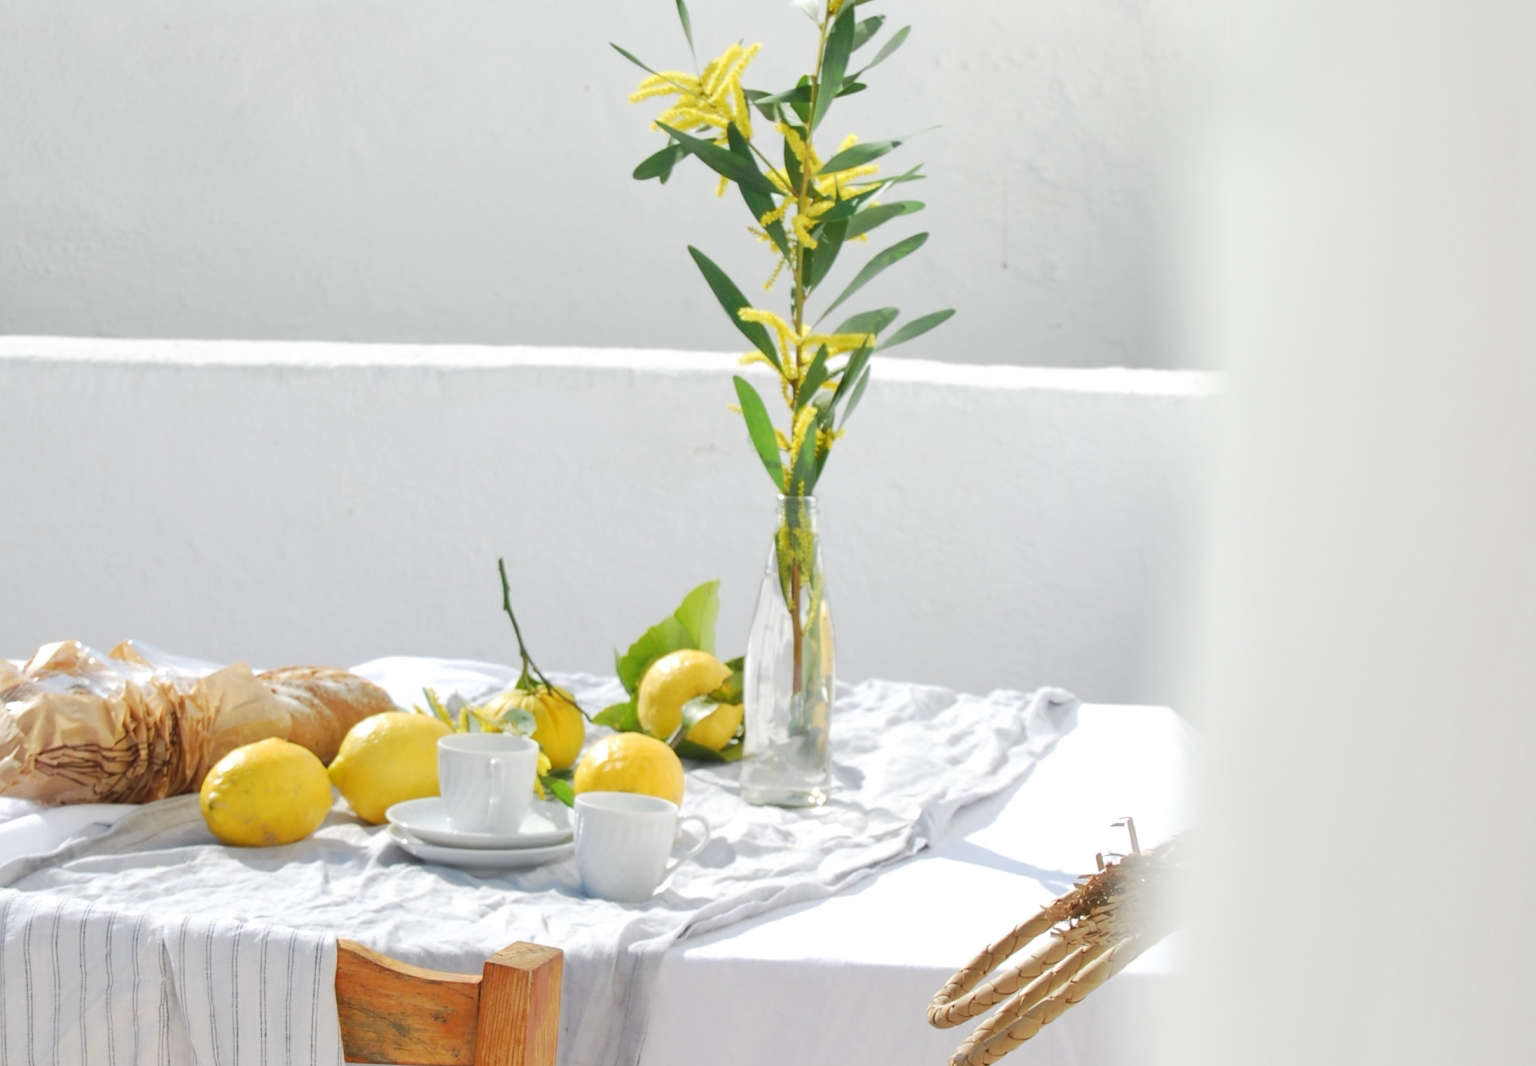 lemons acacia branches outdoor dining portugal chelsea fuss